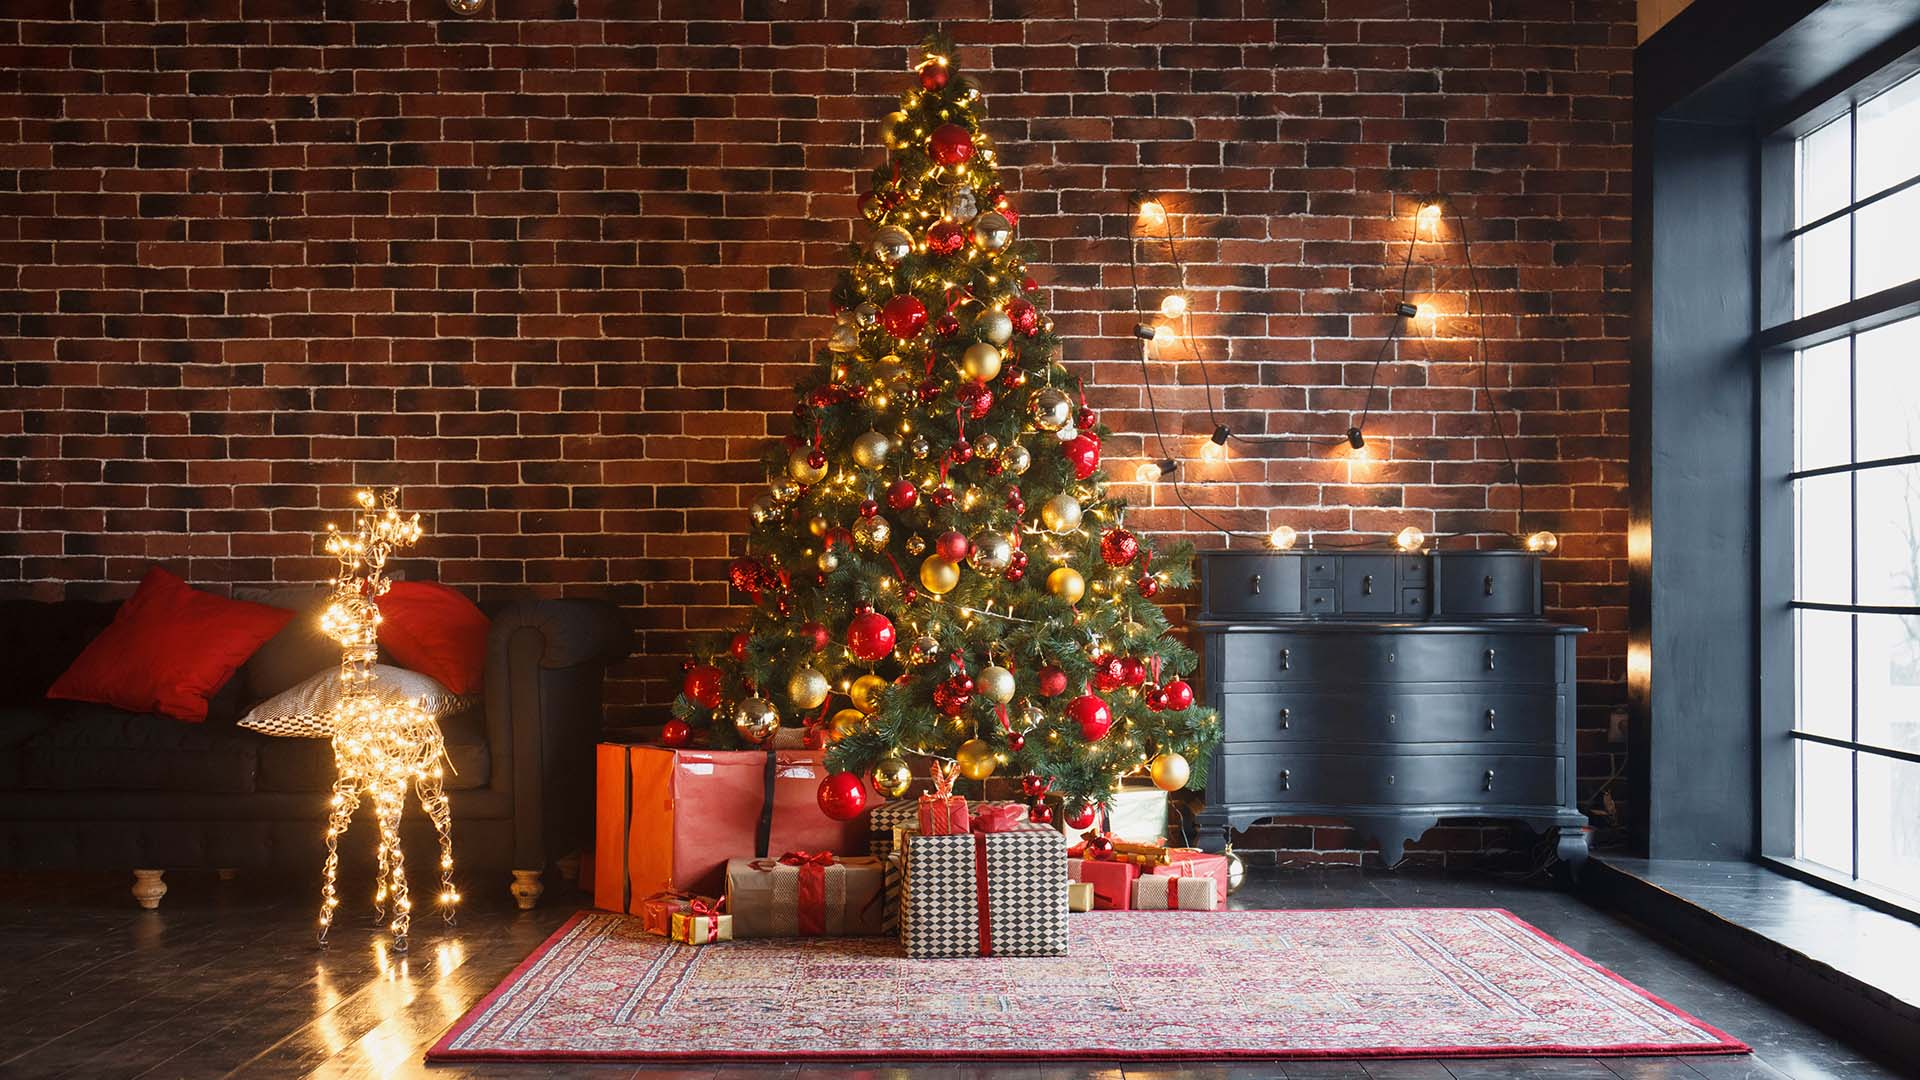 Real Christmas trees are great but they're messy and require a lot of maintenance. An artificial tree reduces the hassle, but you need to make sure you get ...